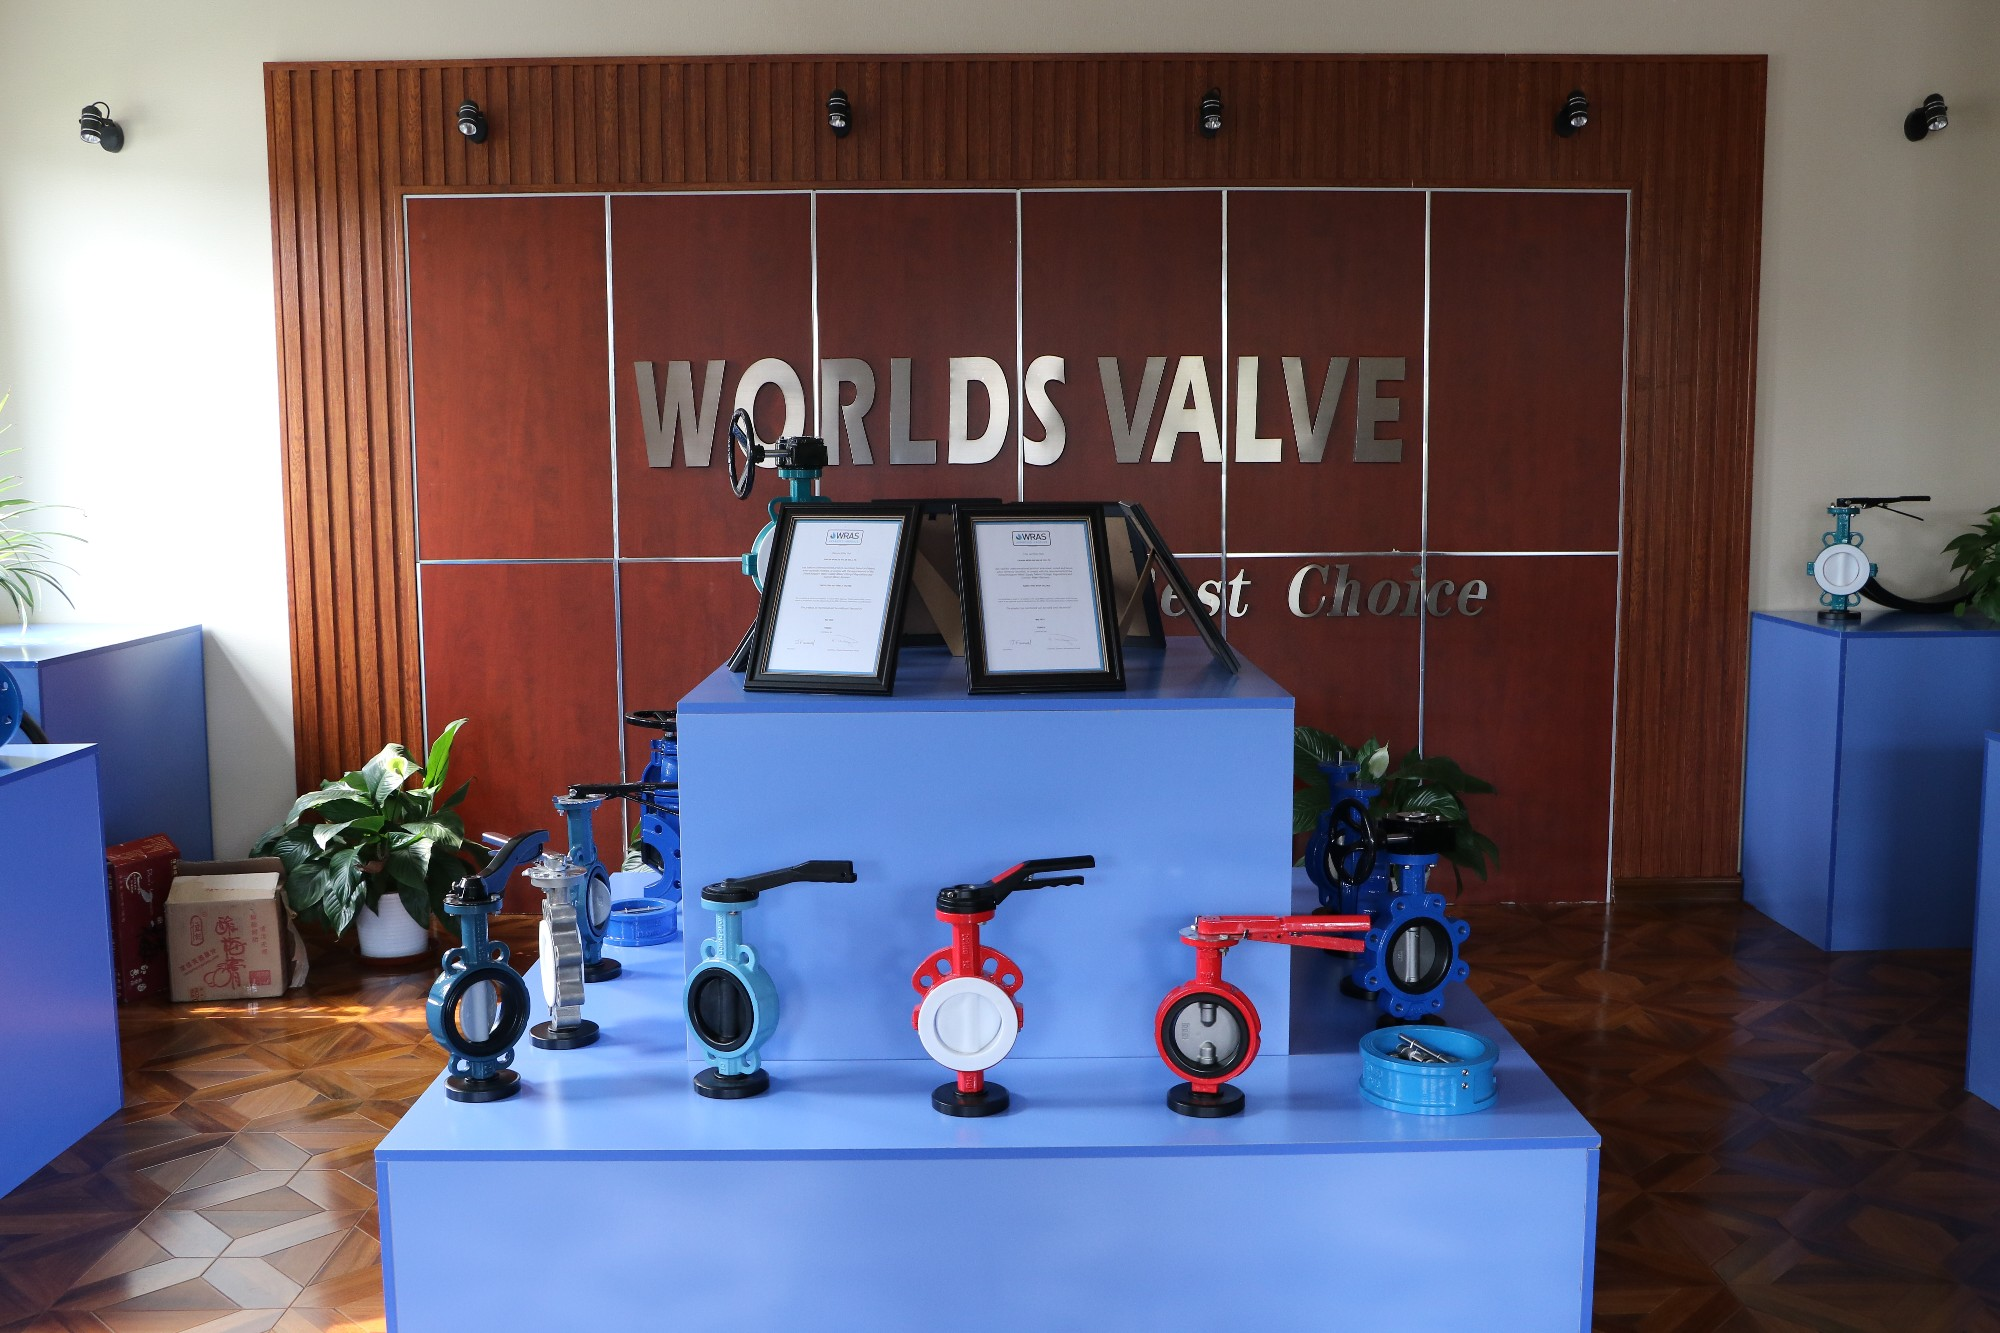 Tianjin Worlds Valve Co.,Ltd.